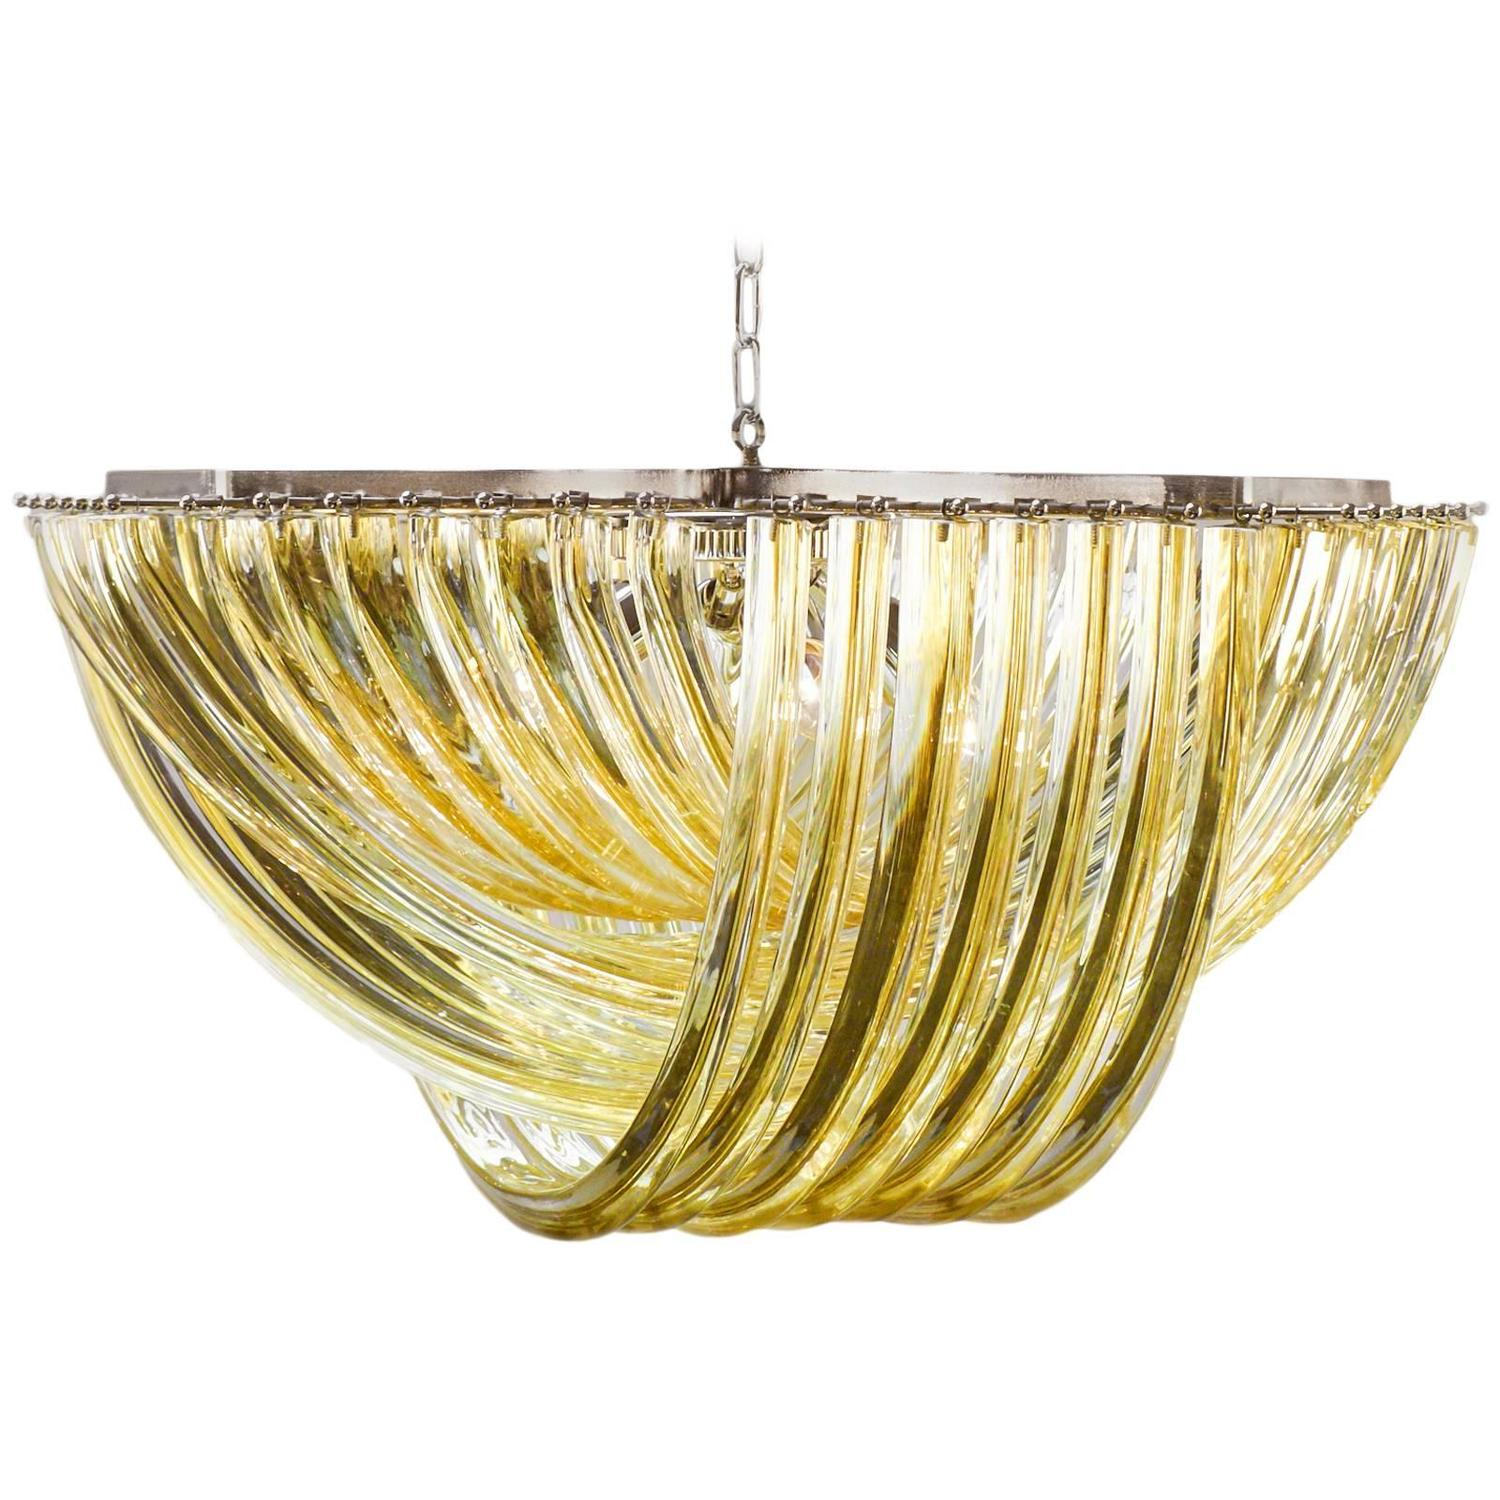 Murano curve chandelier in the style of venini for sale at 1stdibs aloadofball Images